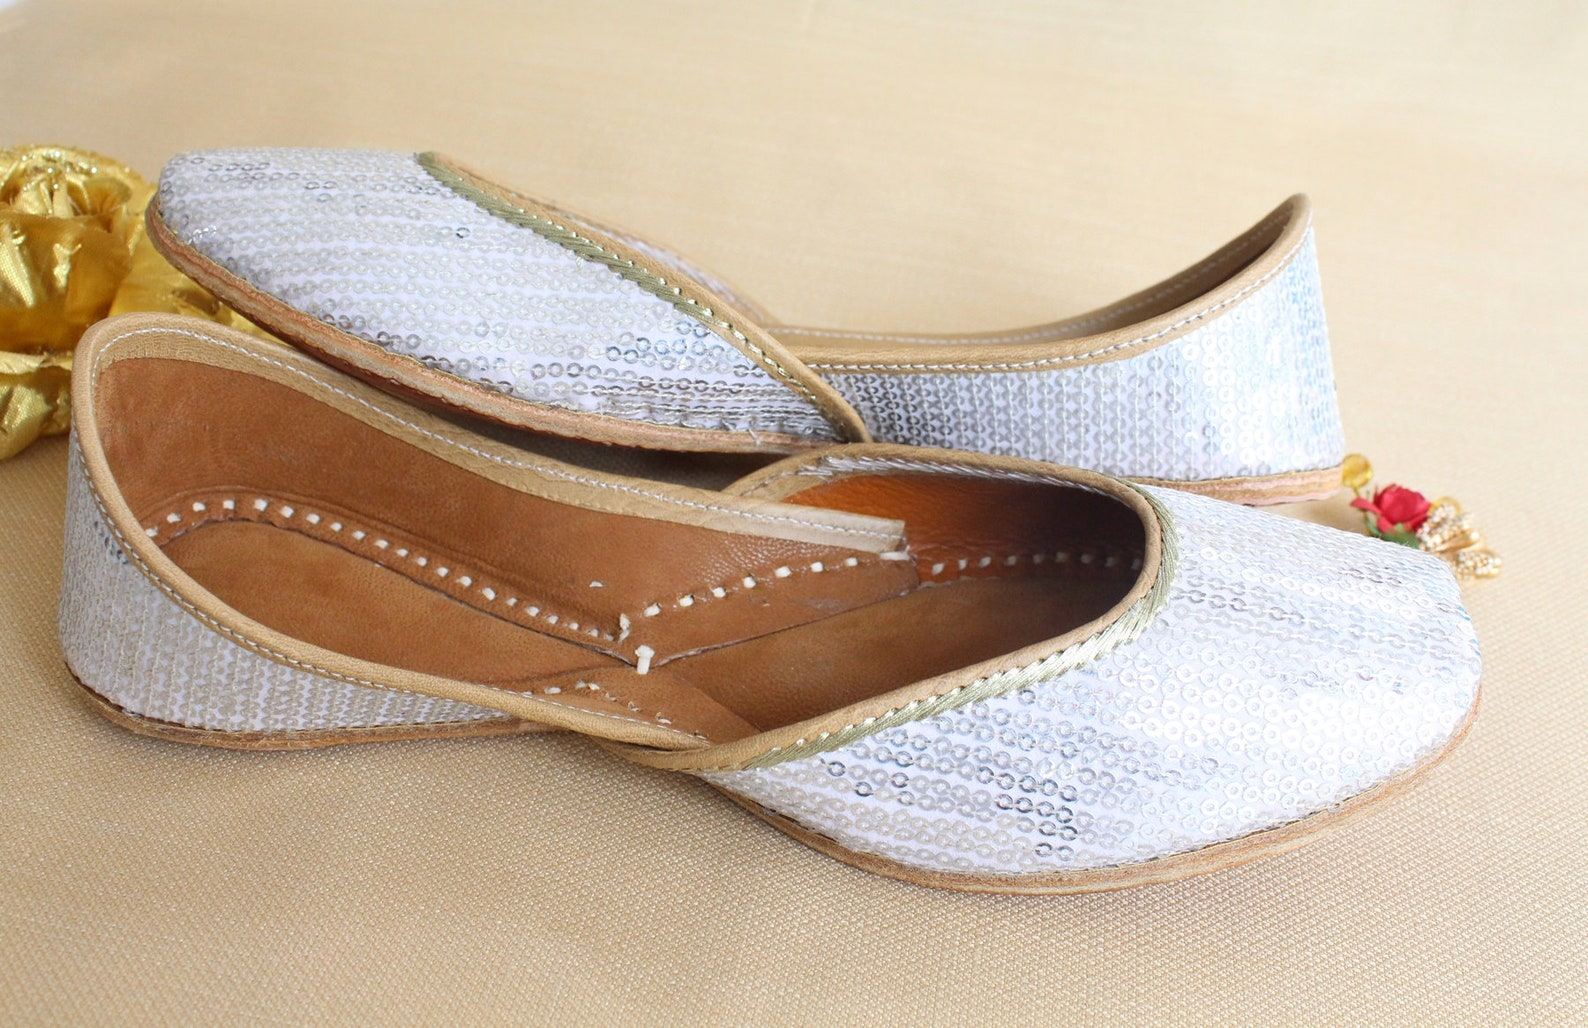 silver flat jutti shoes/bridal shoes/punjabi wedding white flats gift/women ballet slip on flats sandals/jasmine shoes/khussa/